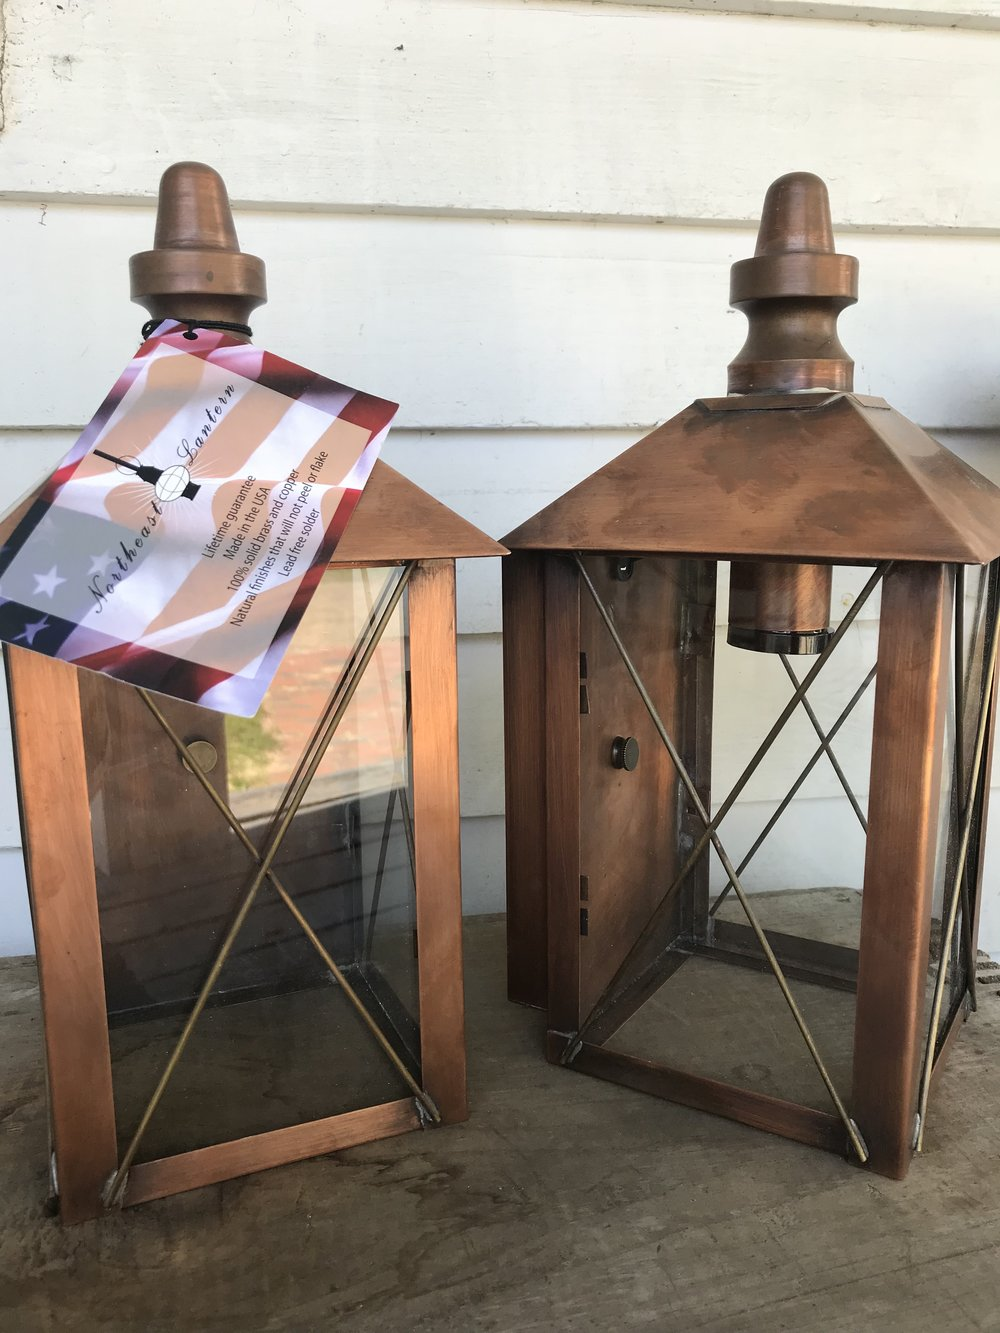 2 Lanterns  - A set of two lanterns from Northeast Lantern.$200 value